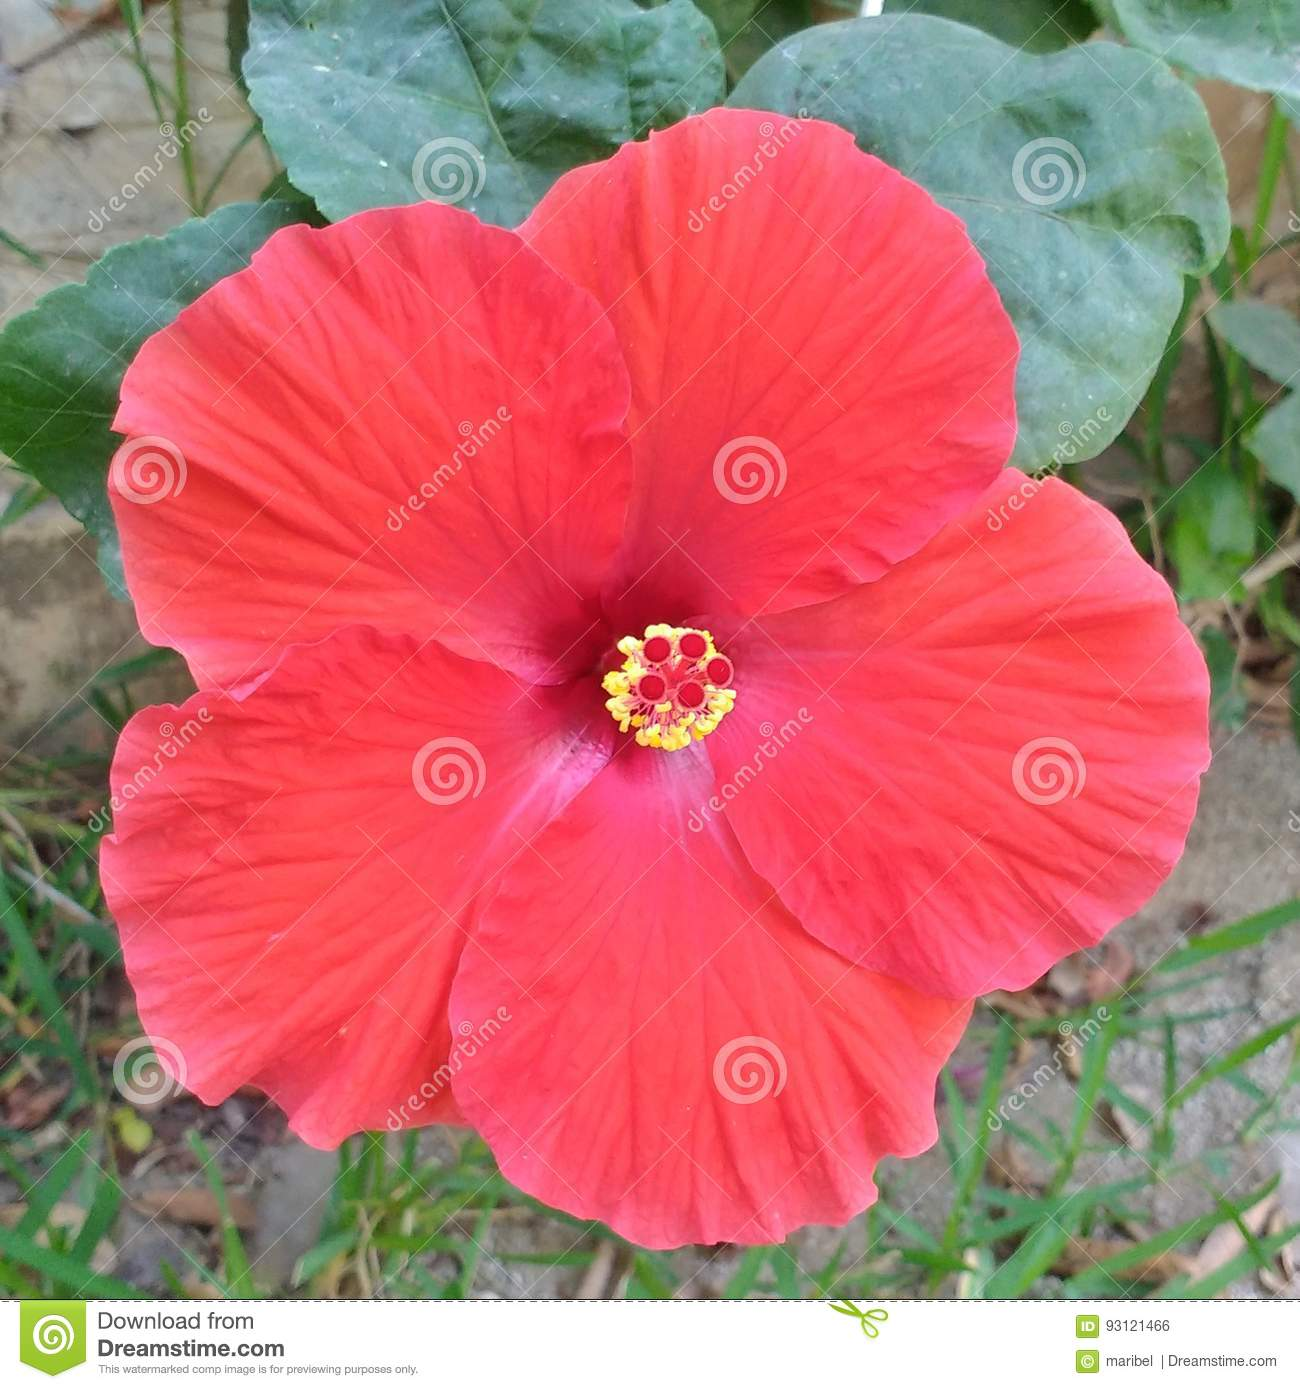 Hawaii Red Flower Stock Photo Image Of Flower Beautiful 93121466